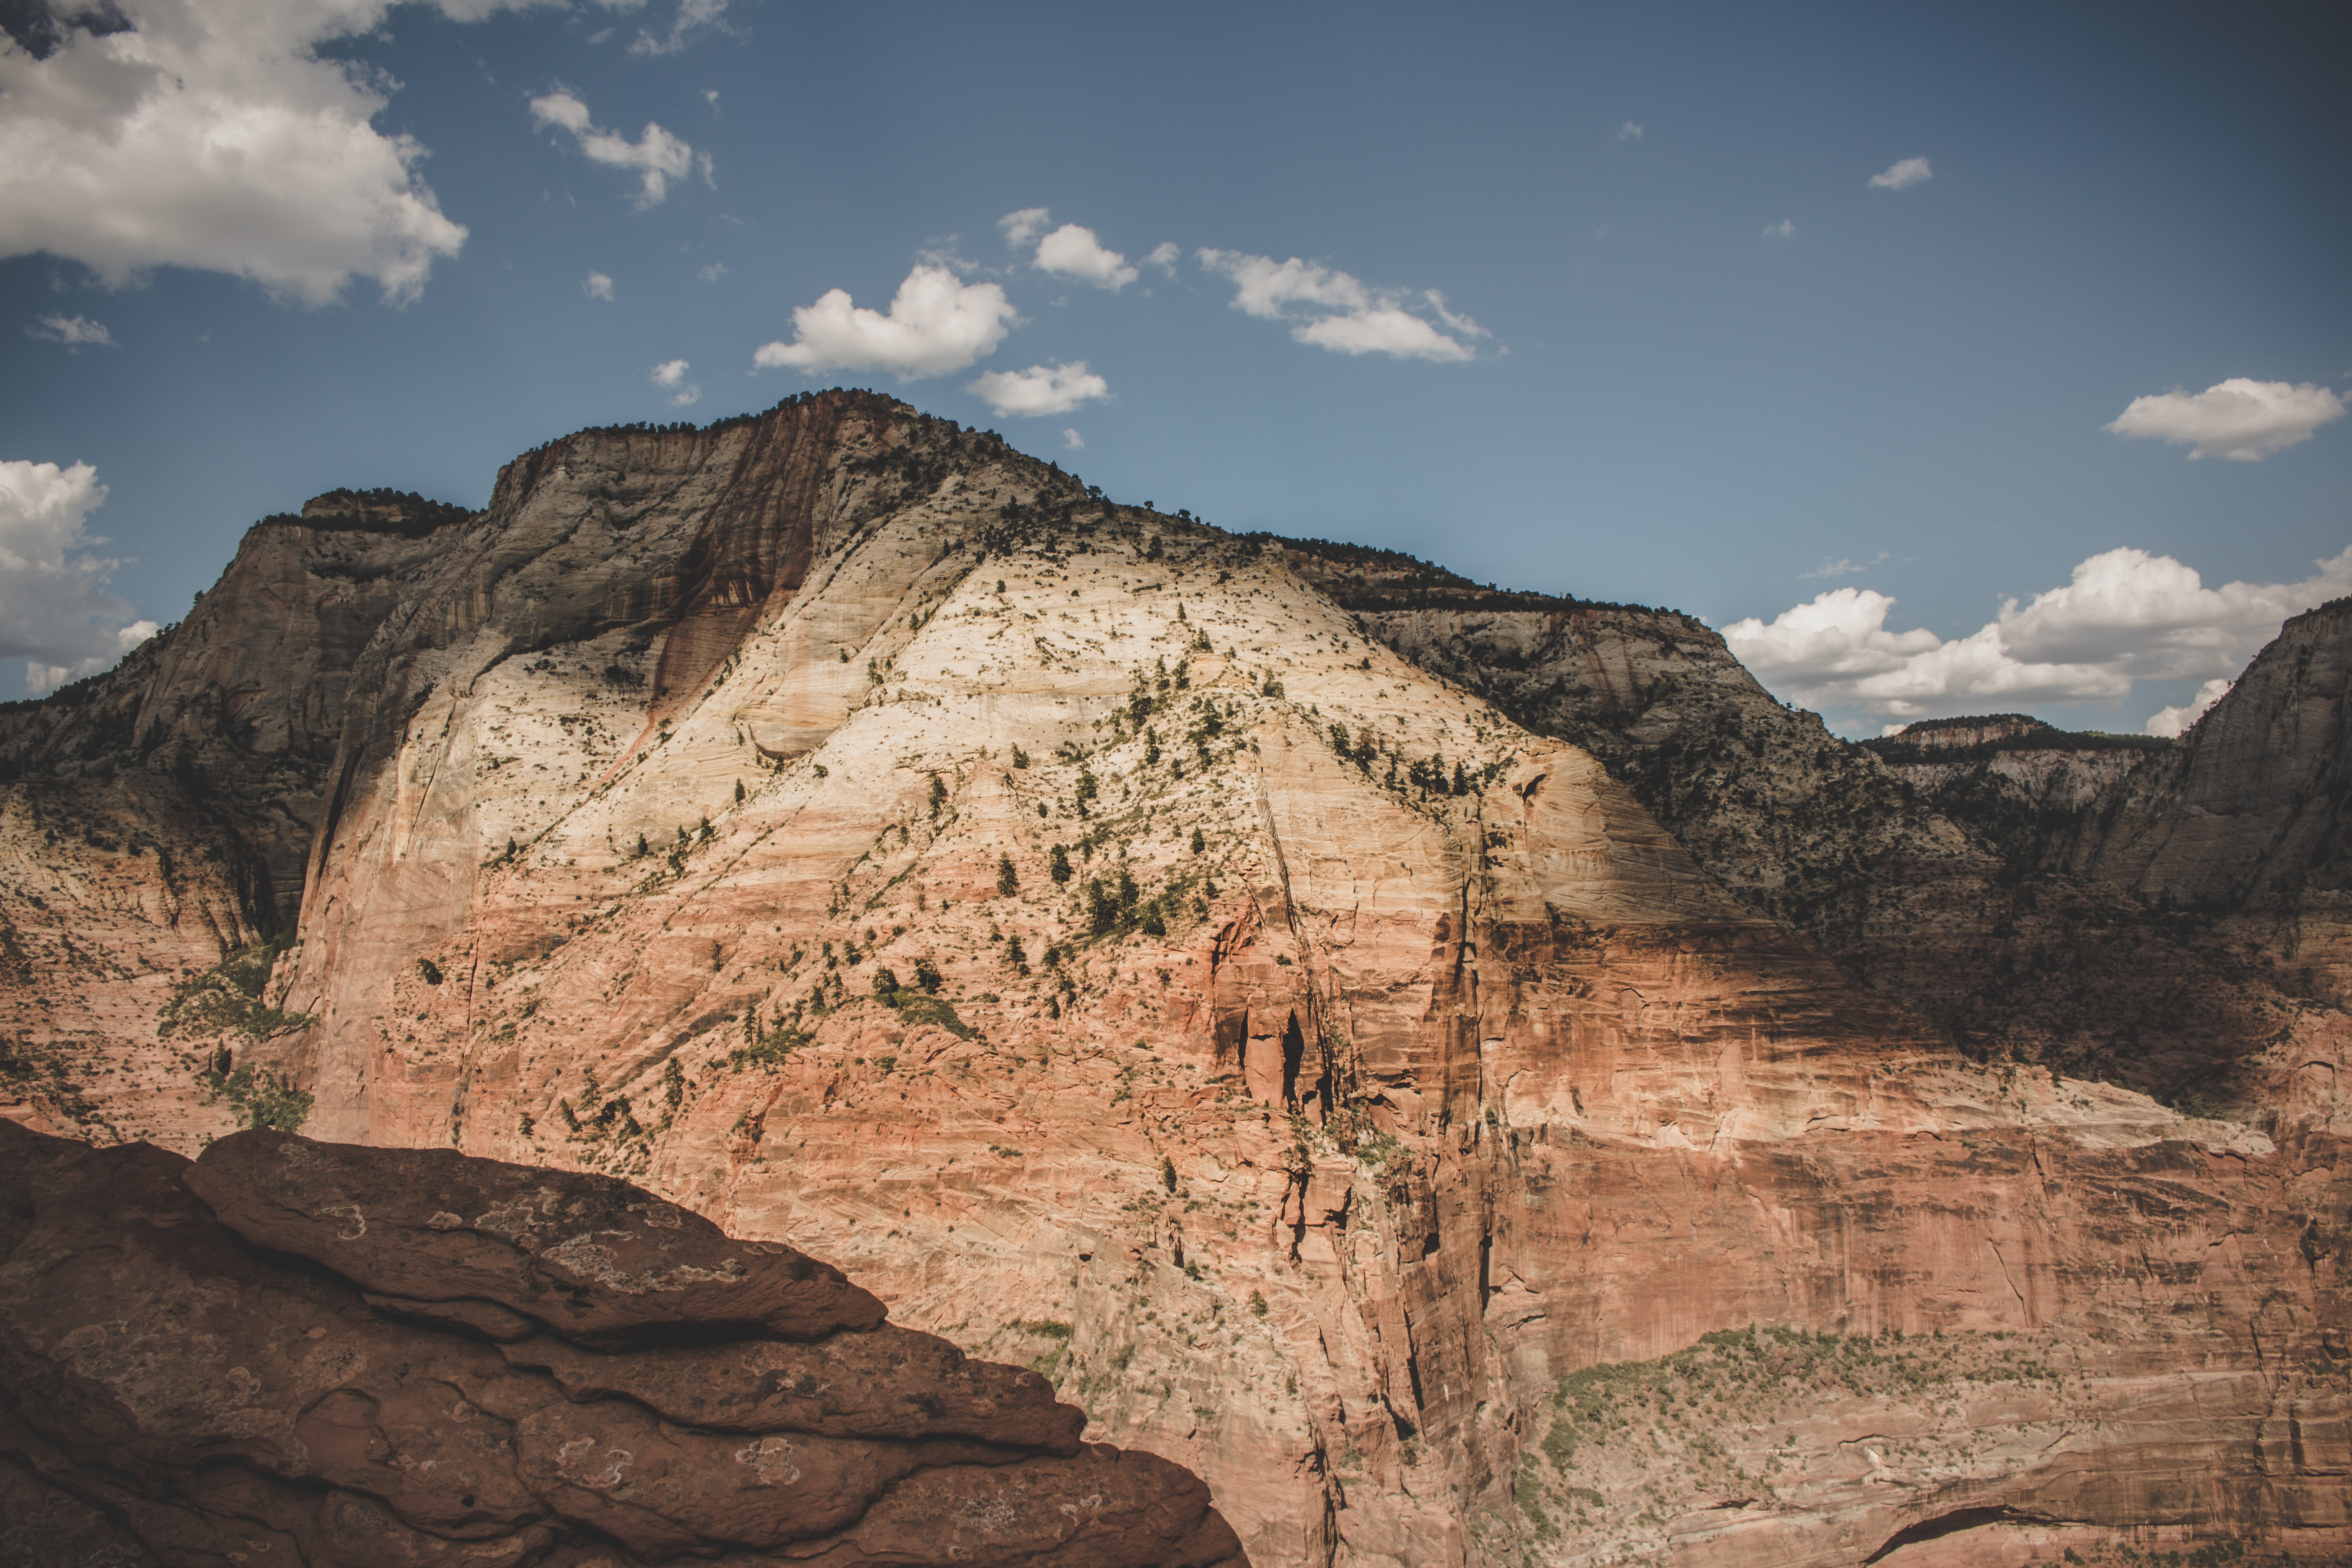 A red sandstone mountain under scattered clouds on a blue sky